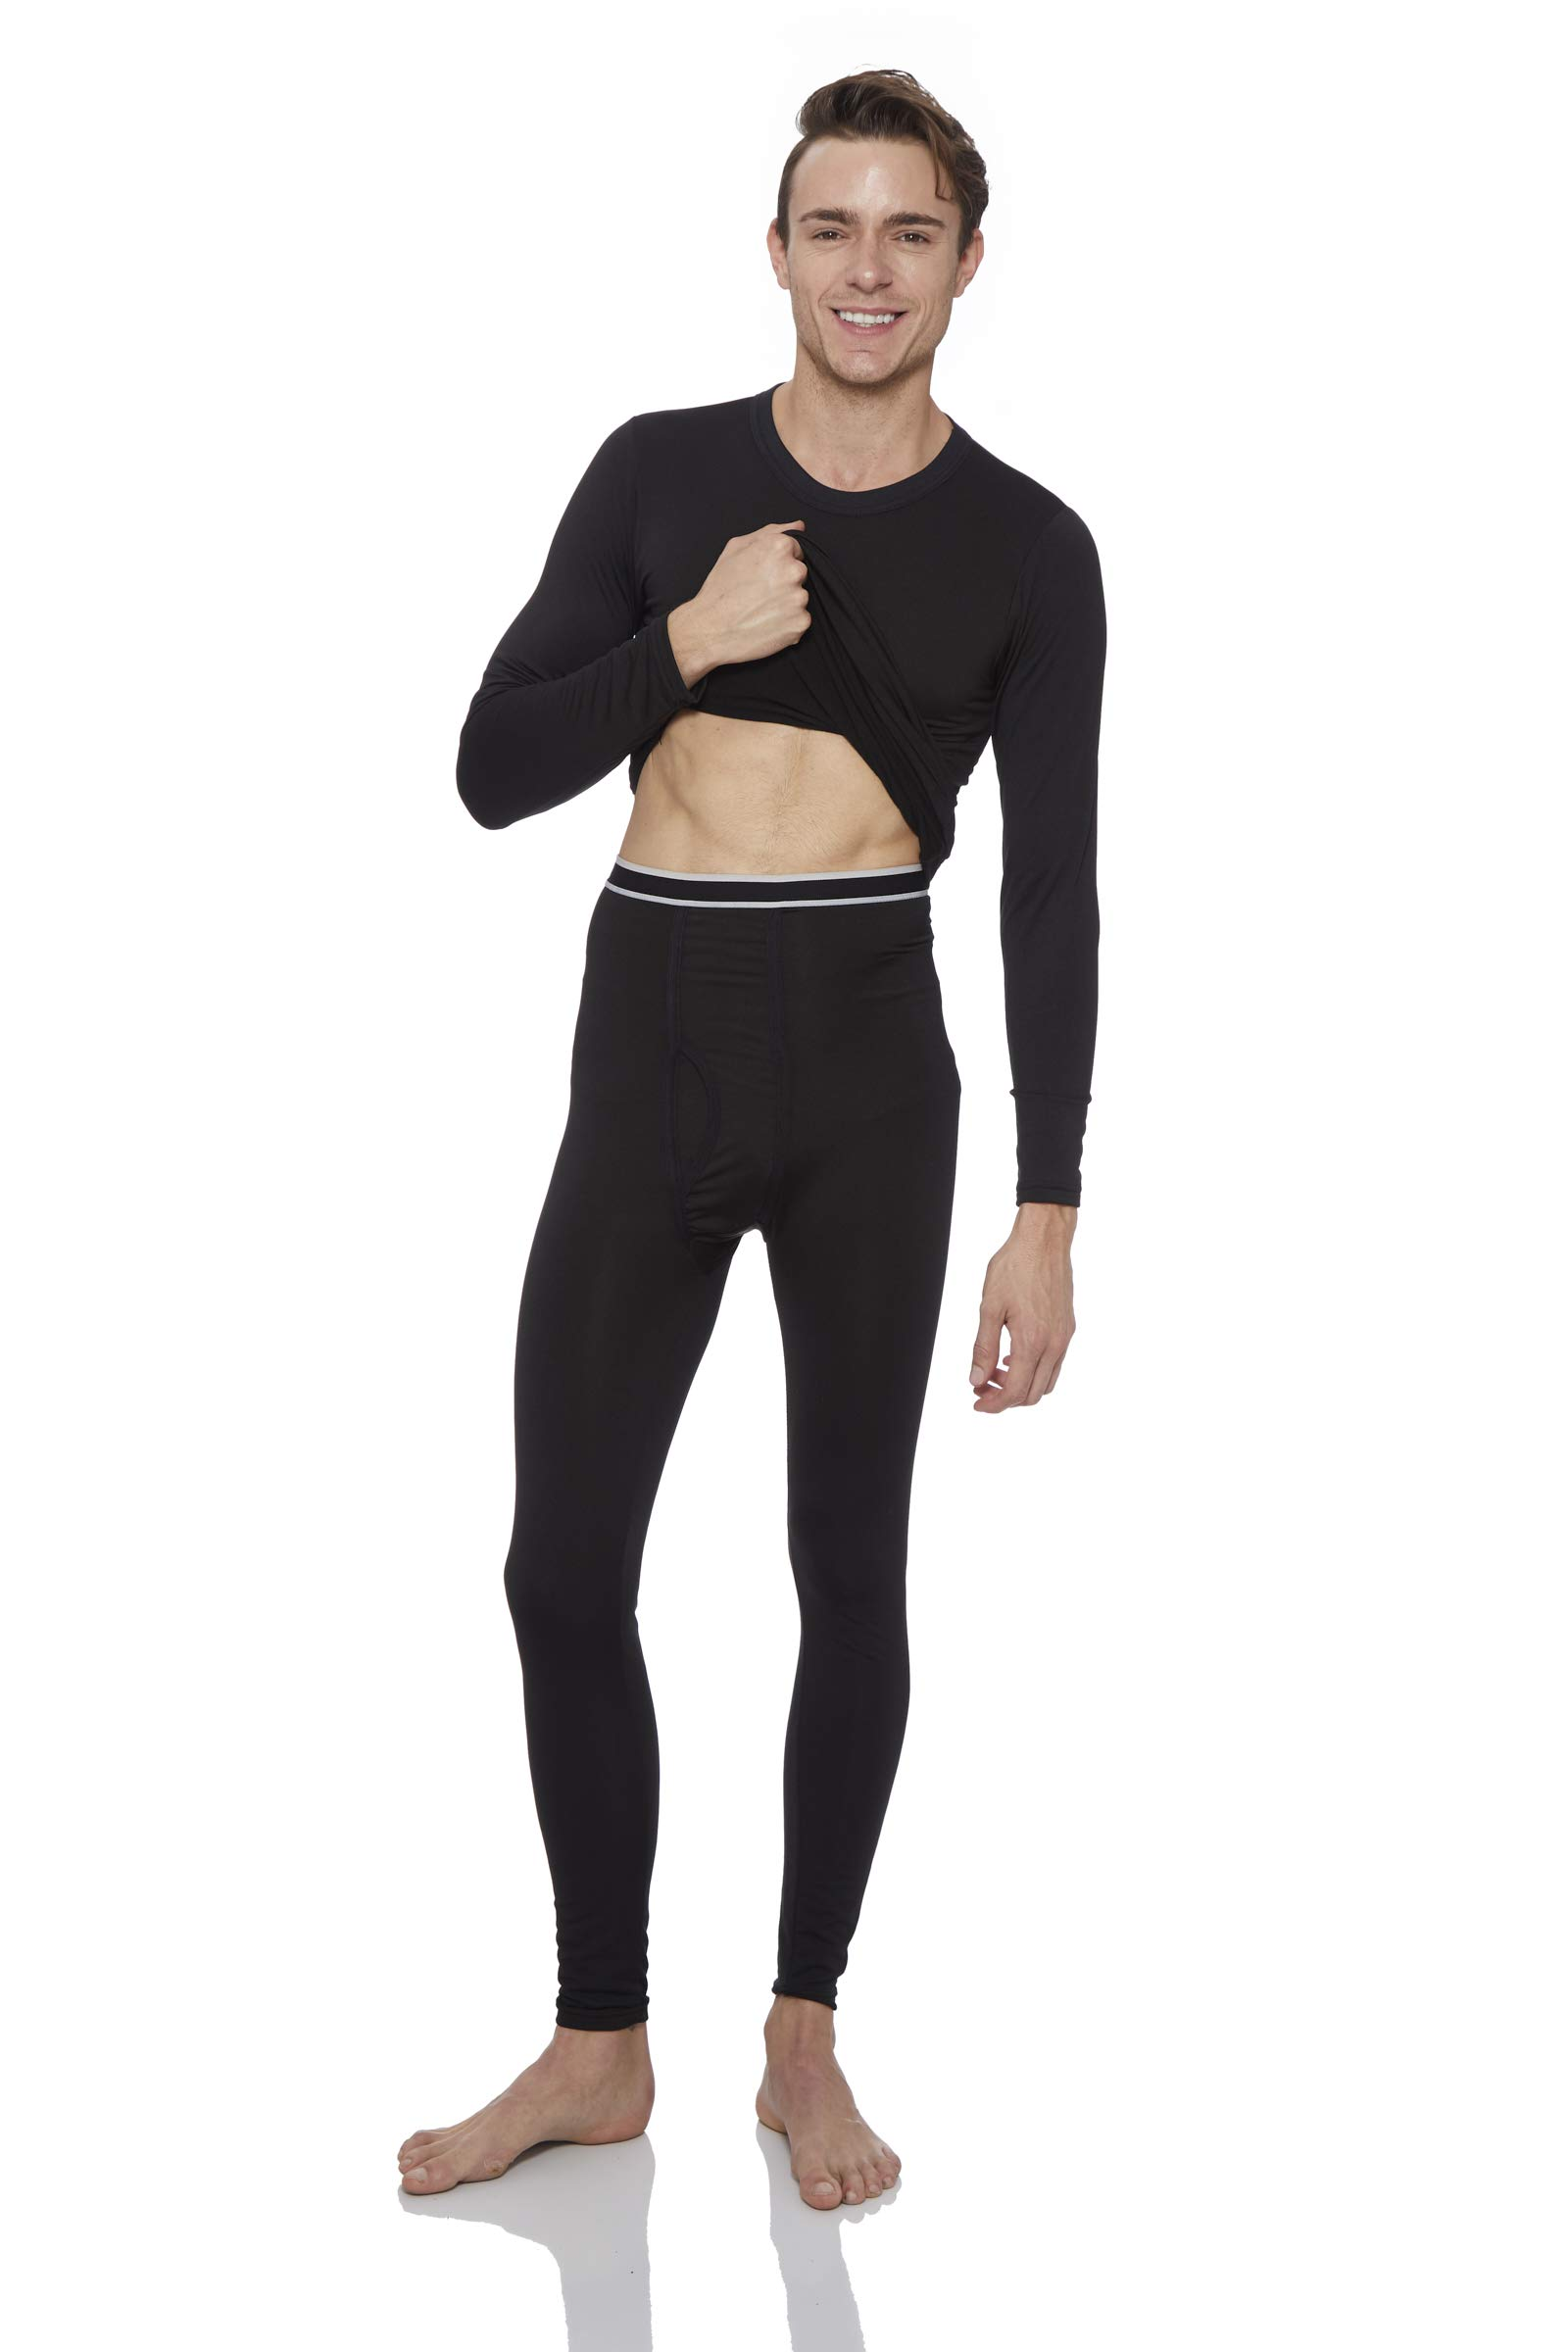 Rocky Thermal Underwear for Men Fleece Lined Thermals Men's Base Layer Long John Set Black by Rocky